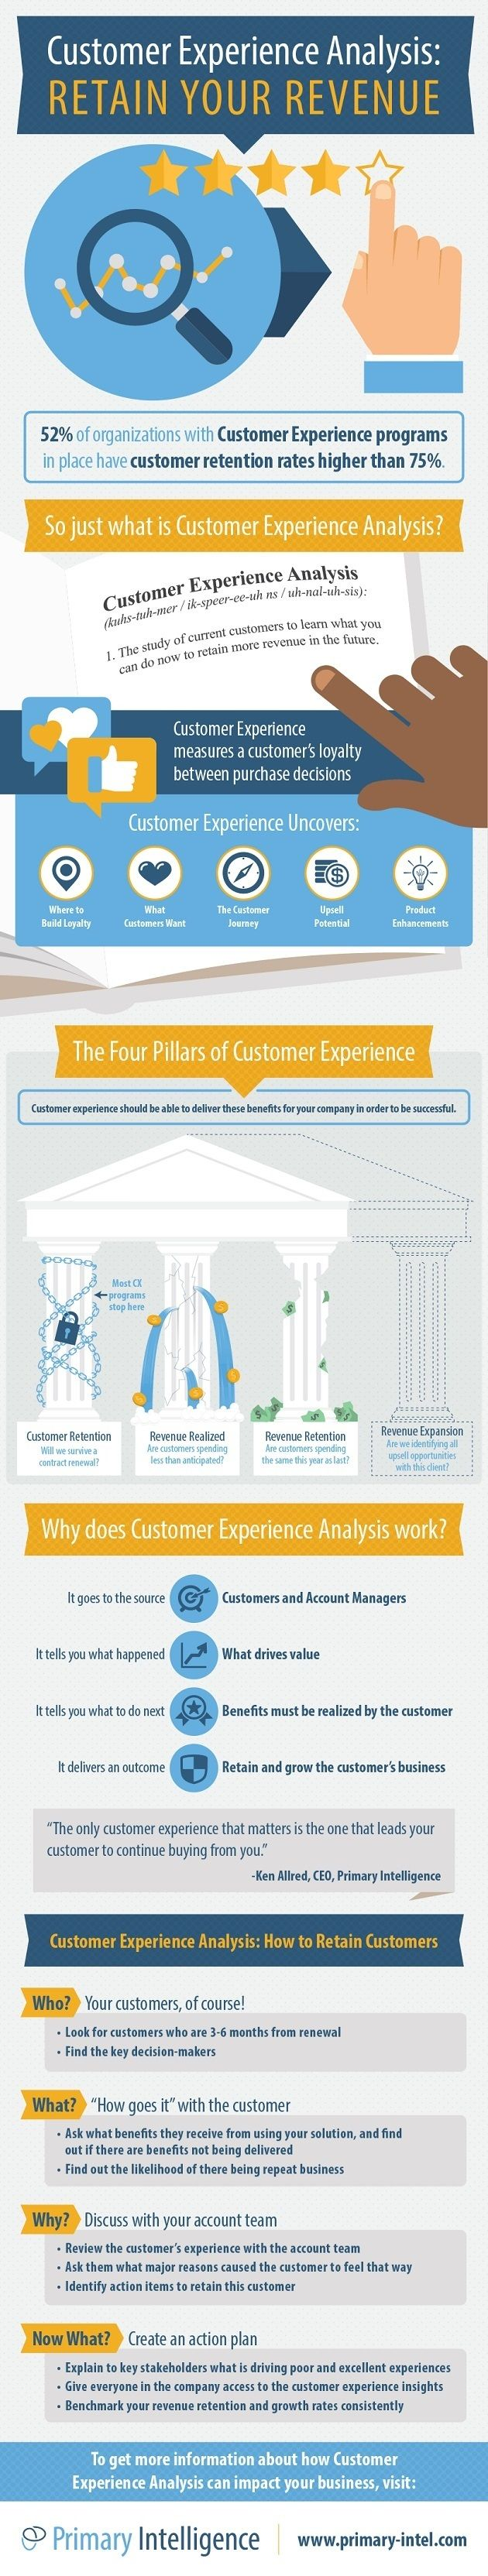 Customer Behavior - Customer Experience Analysis: How to Retain Your Customers [Infographic] : MarketingProfs Article